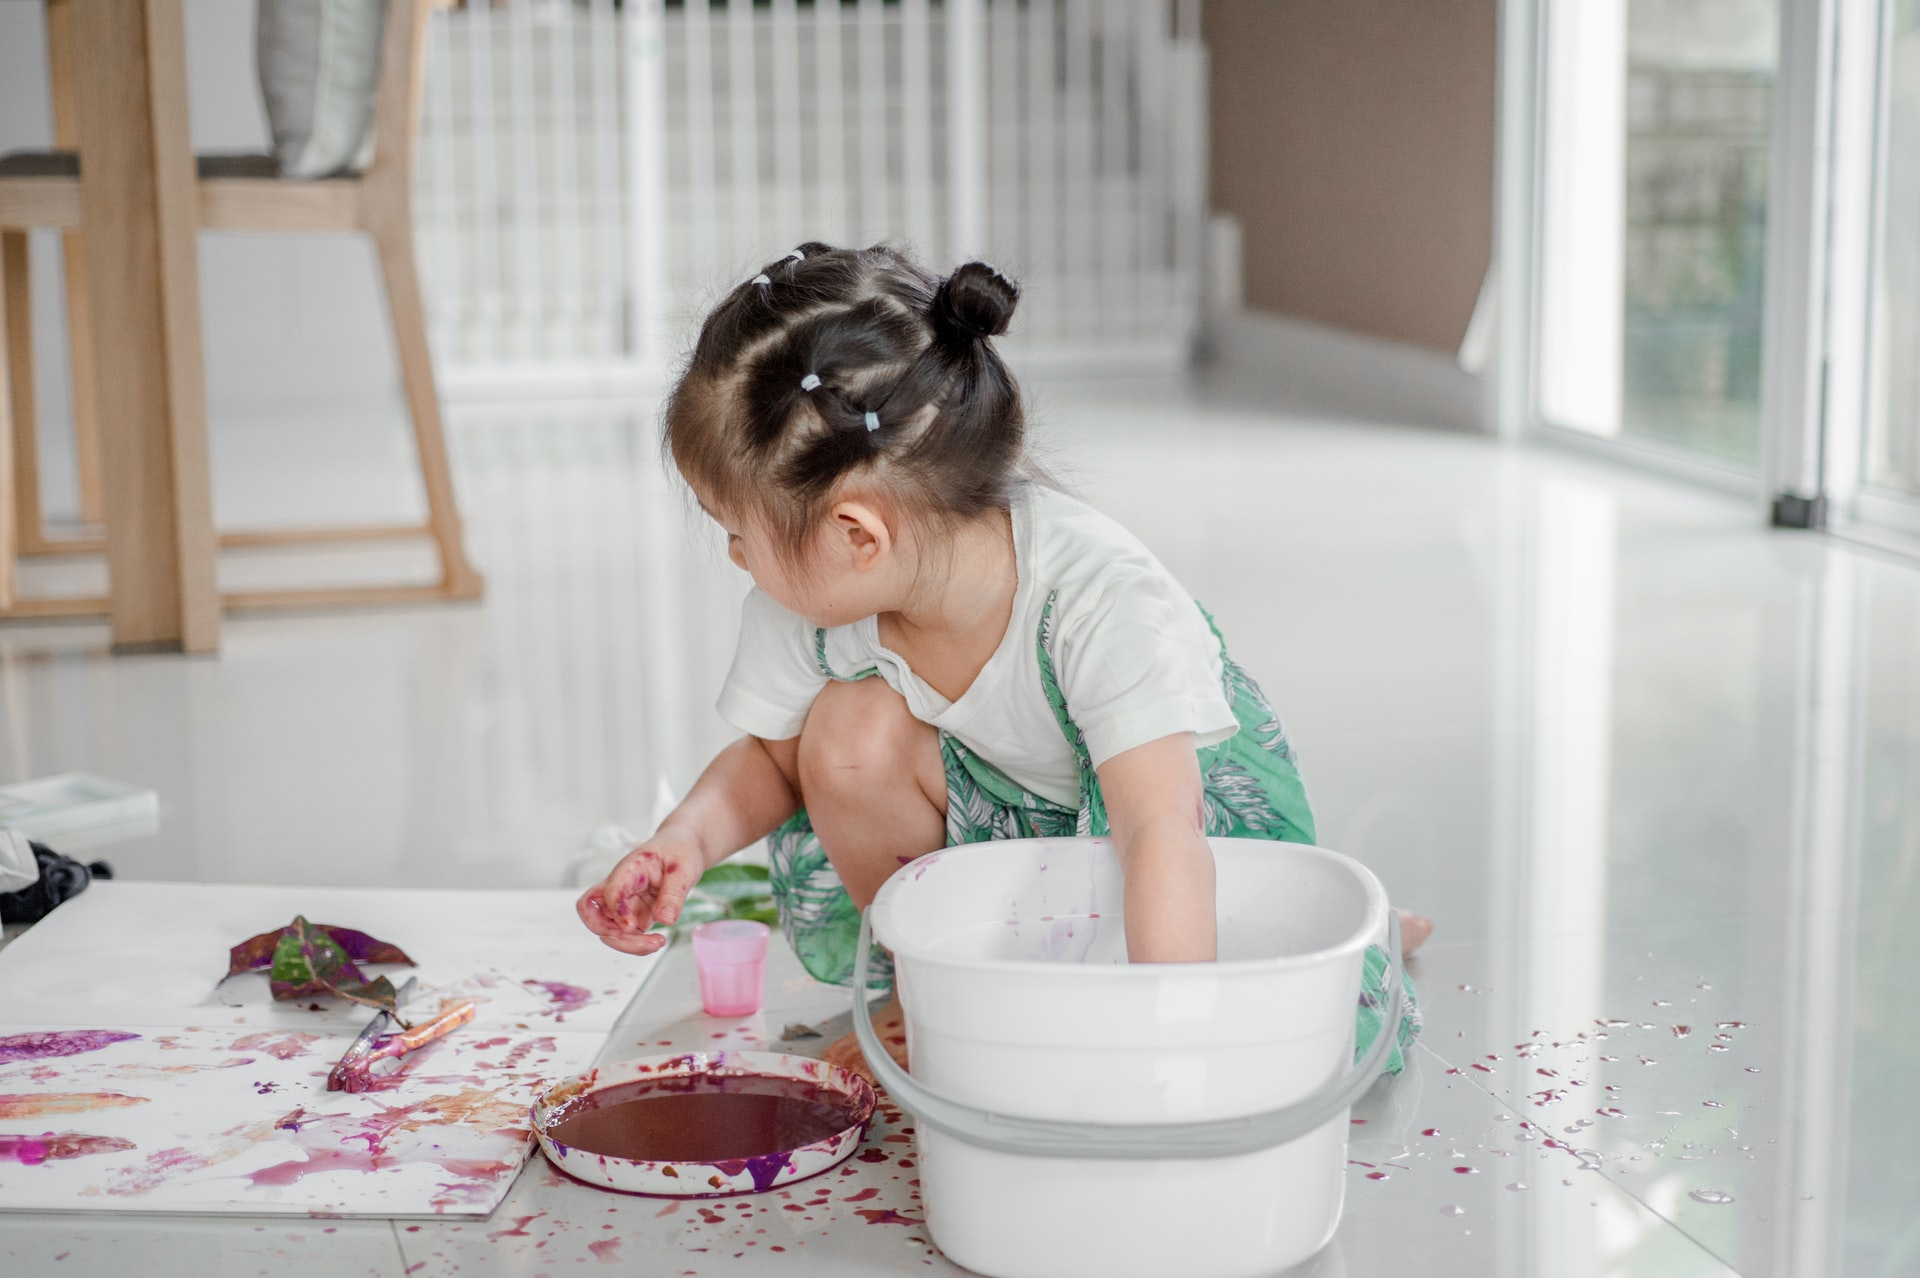 38 Ways to Have Fun at Home With Your Kids